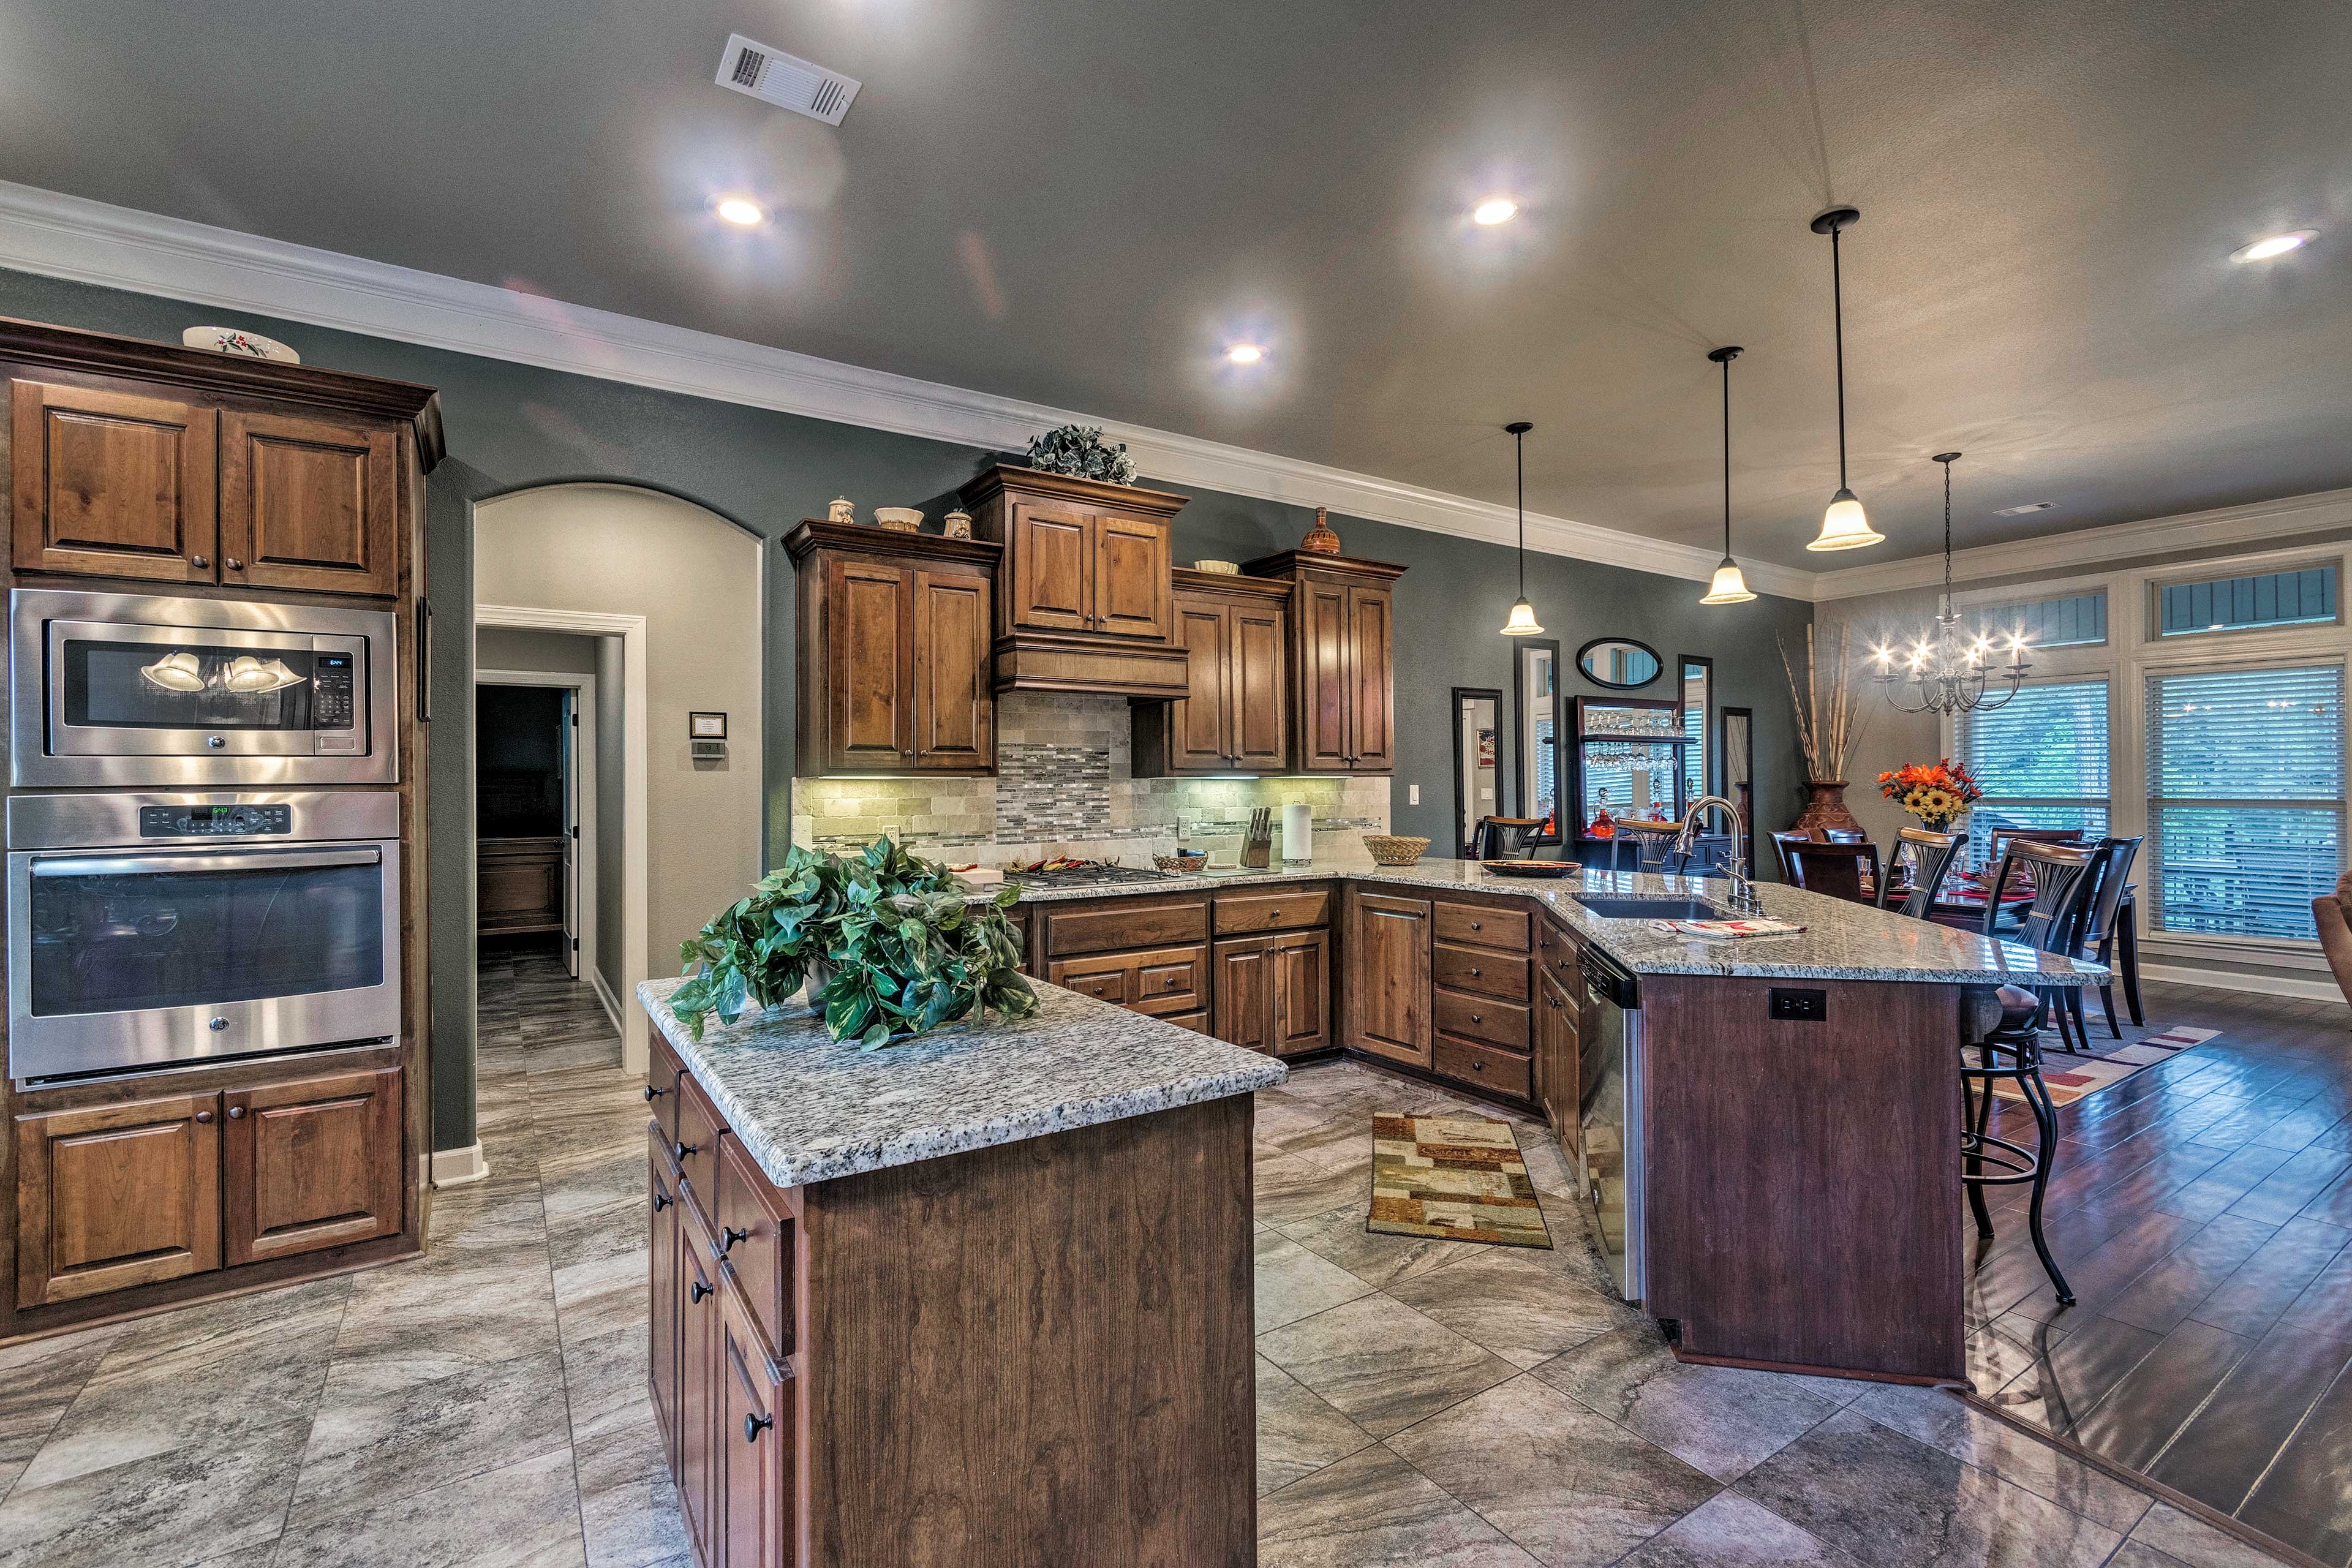 With stainless steel appliances, the kitchen makes cooking a breeze.